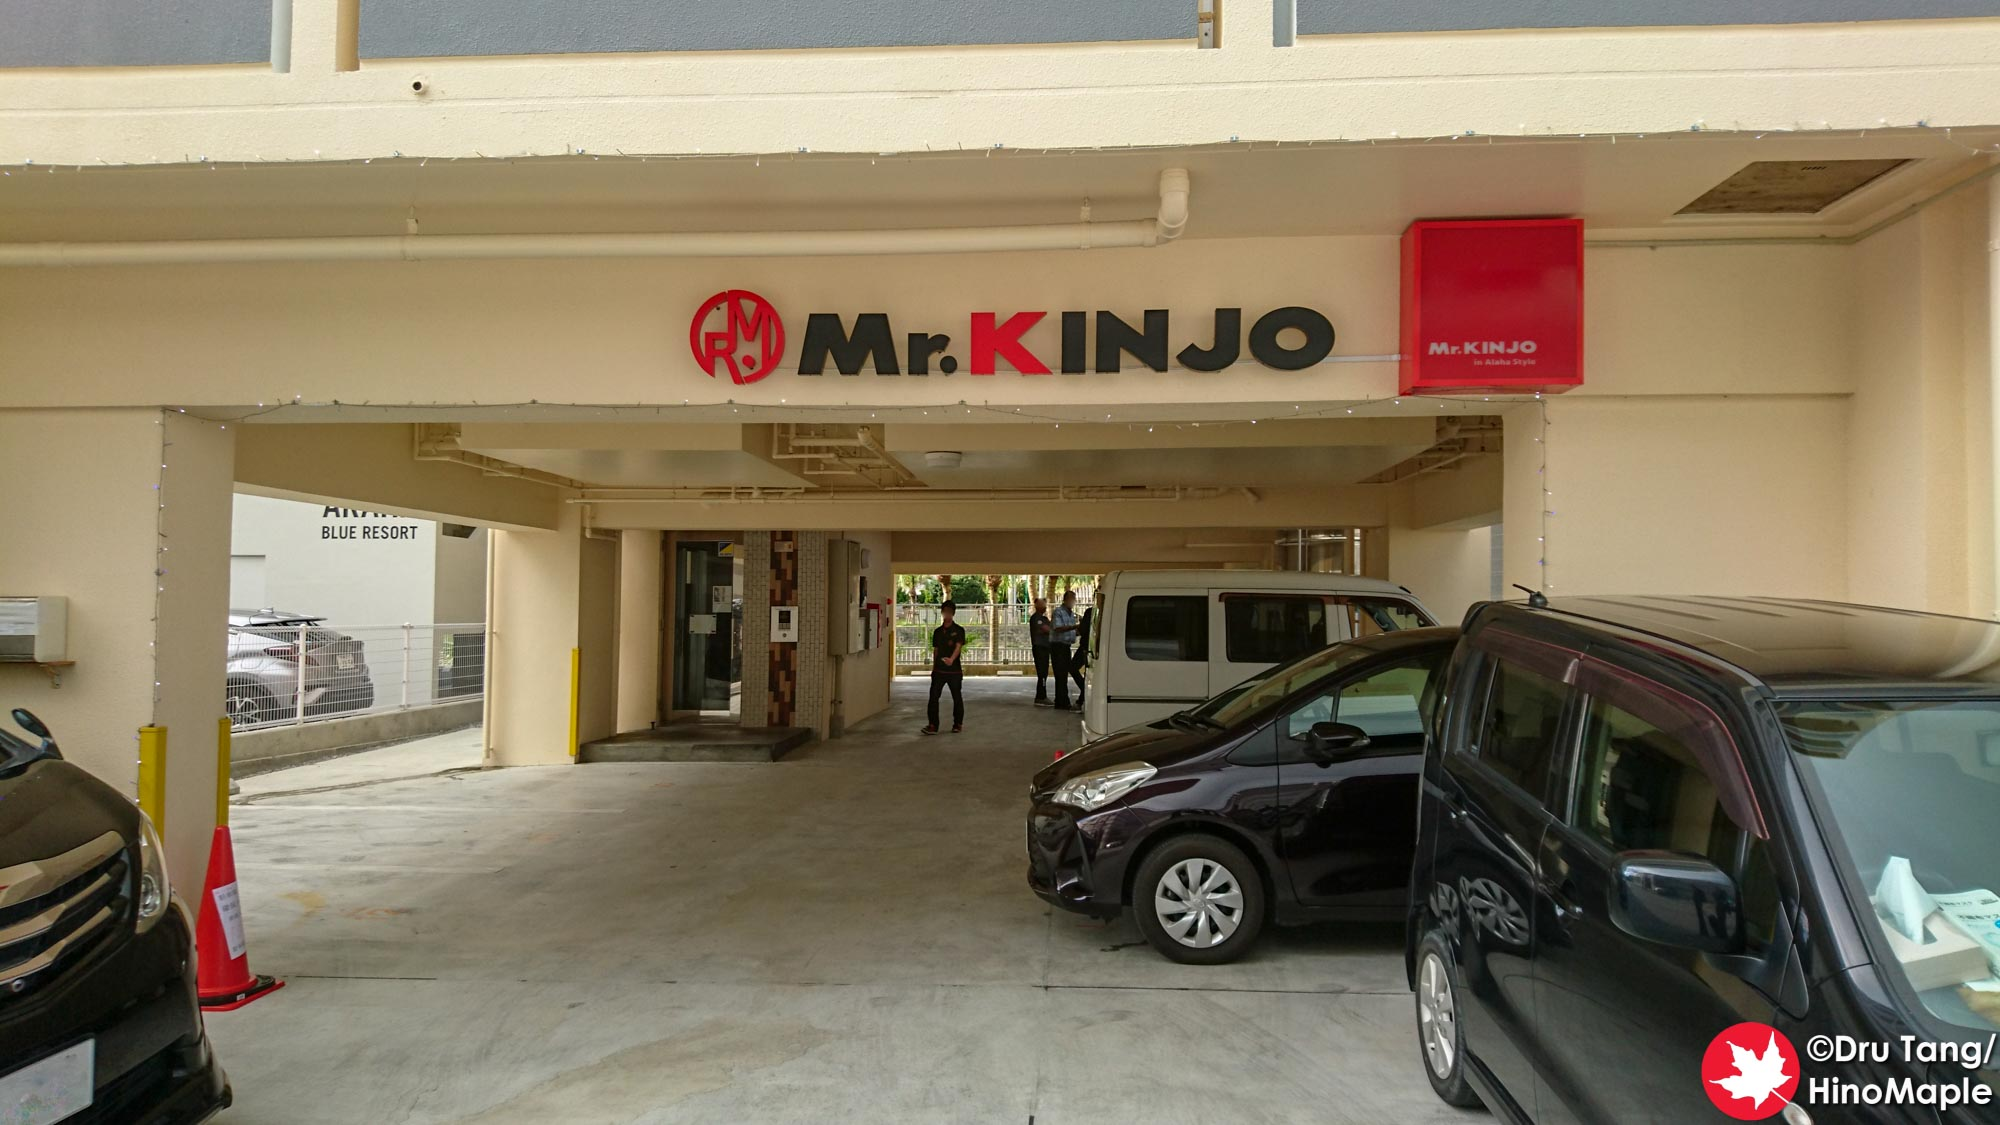 Mr. Kinjo in Alaha Style (Entrance)